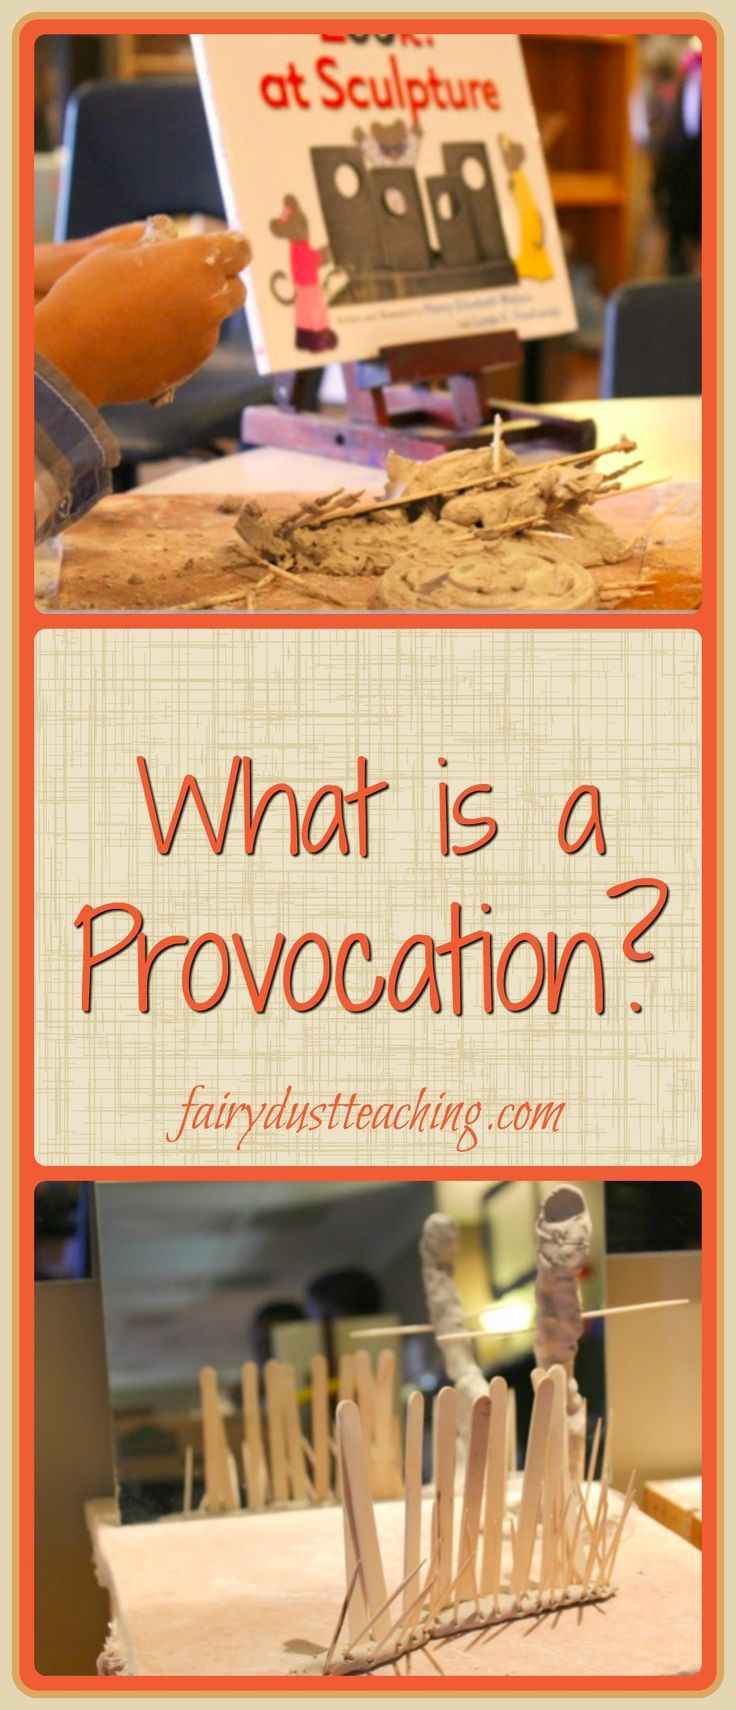 What is a Provocation? A new blog post from Fairy Dust Teaching. fairydustteaching.com